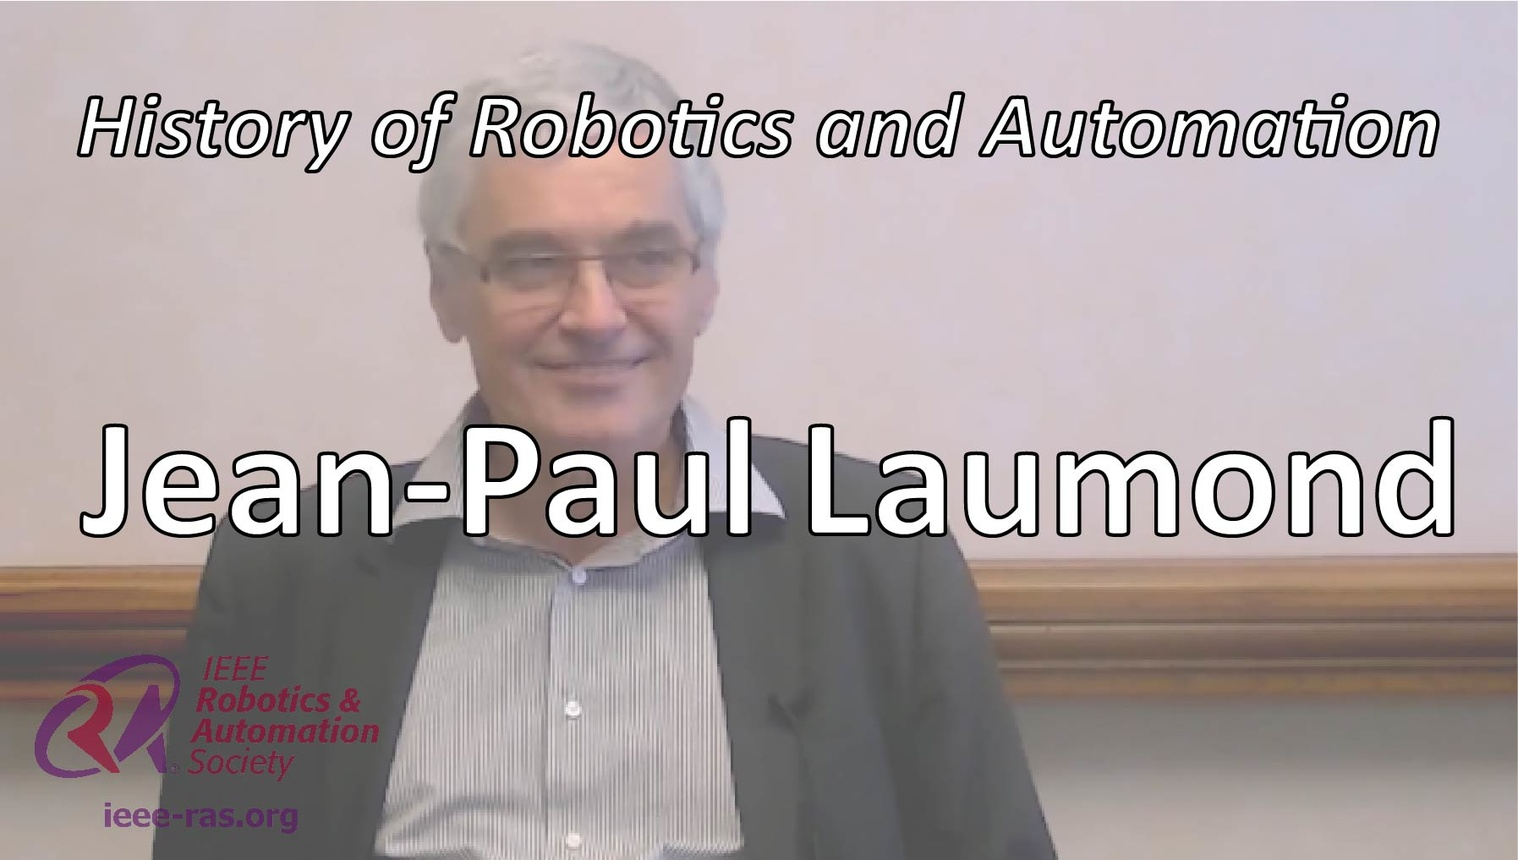 History of Robotics and Automation: Anthropomorphic Motion with Jean Paul Laumond